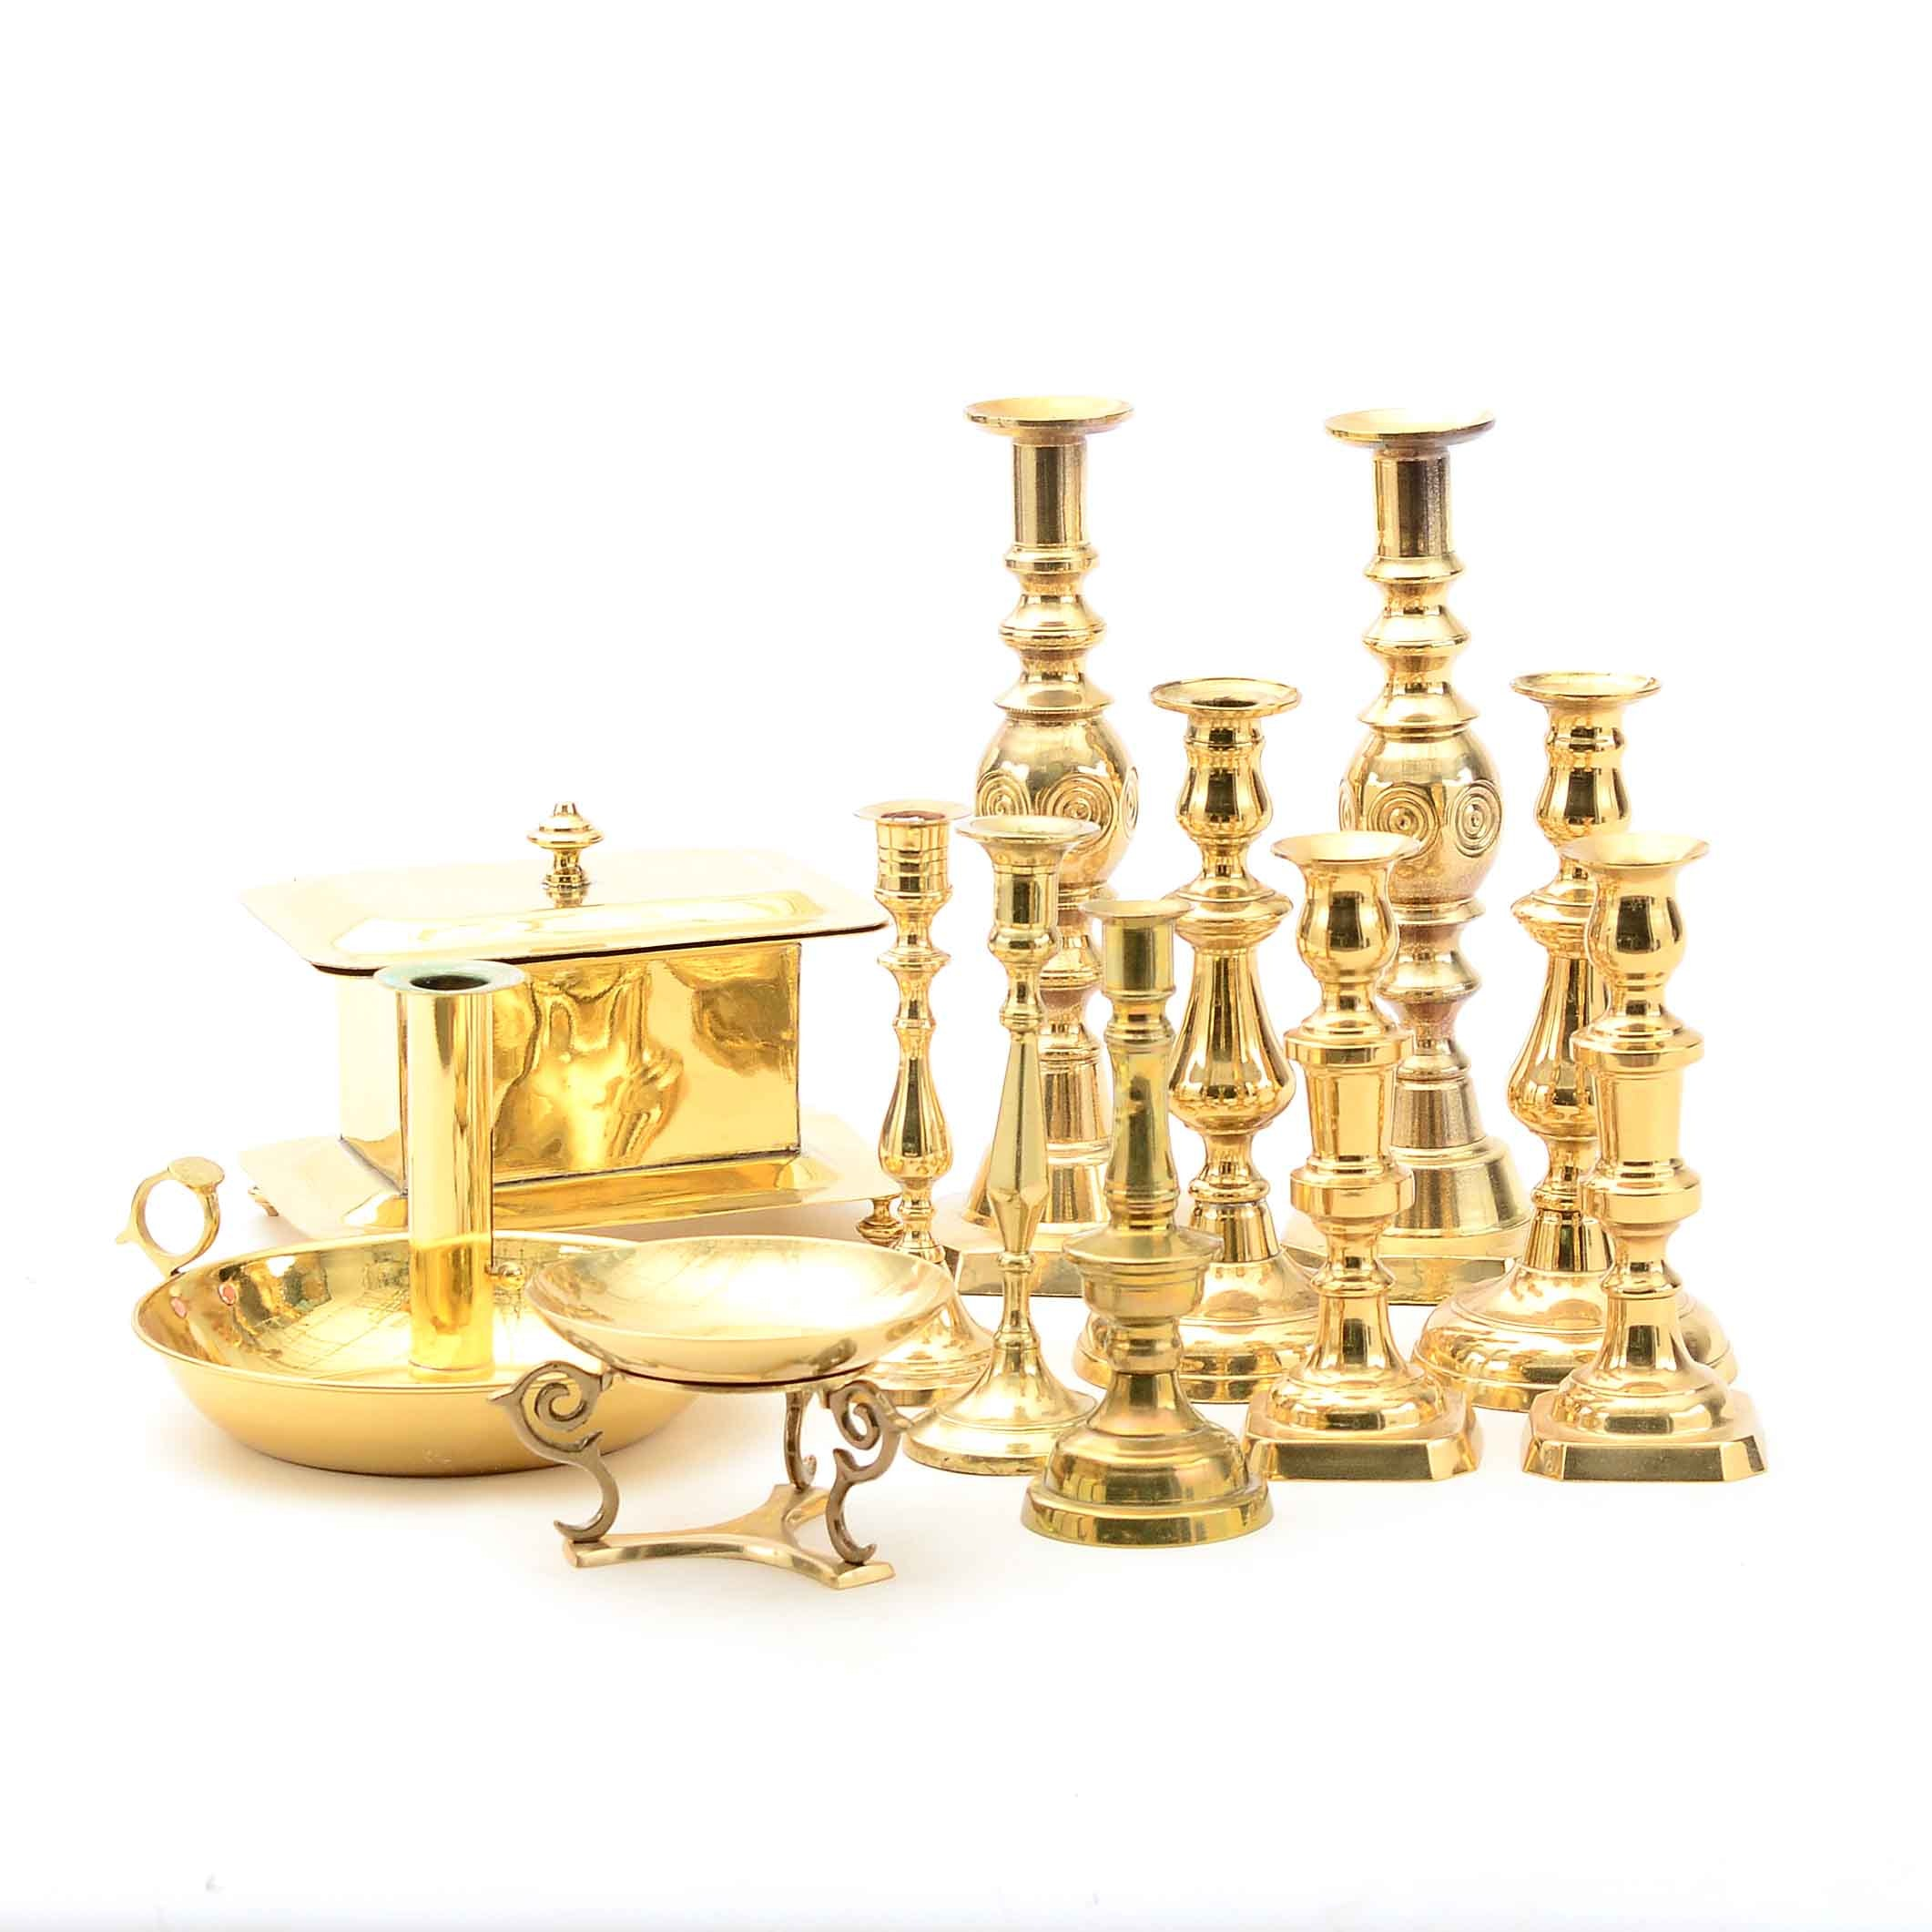 Group of Brass Candlesticks and Decor